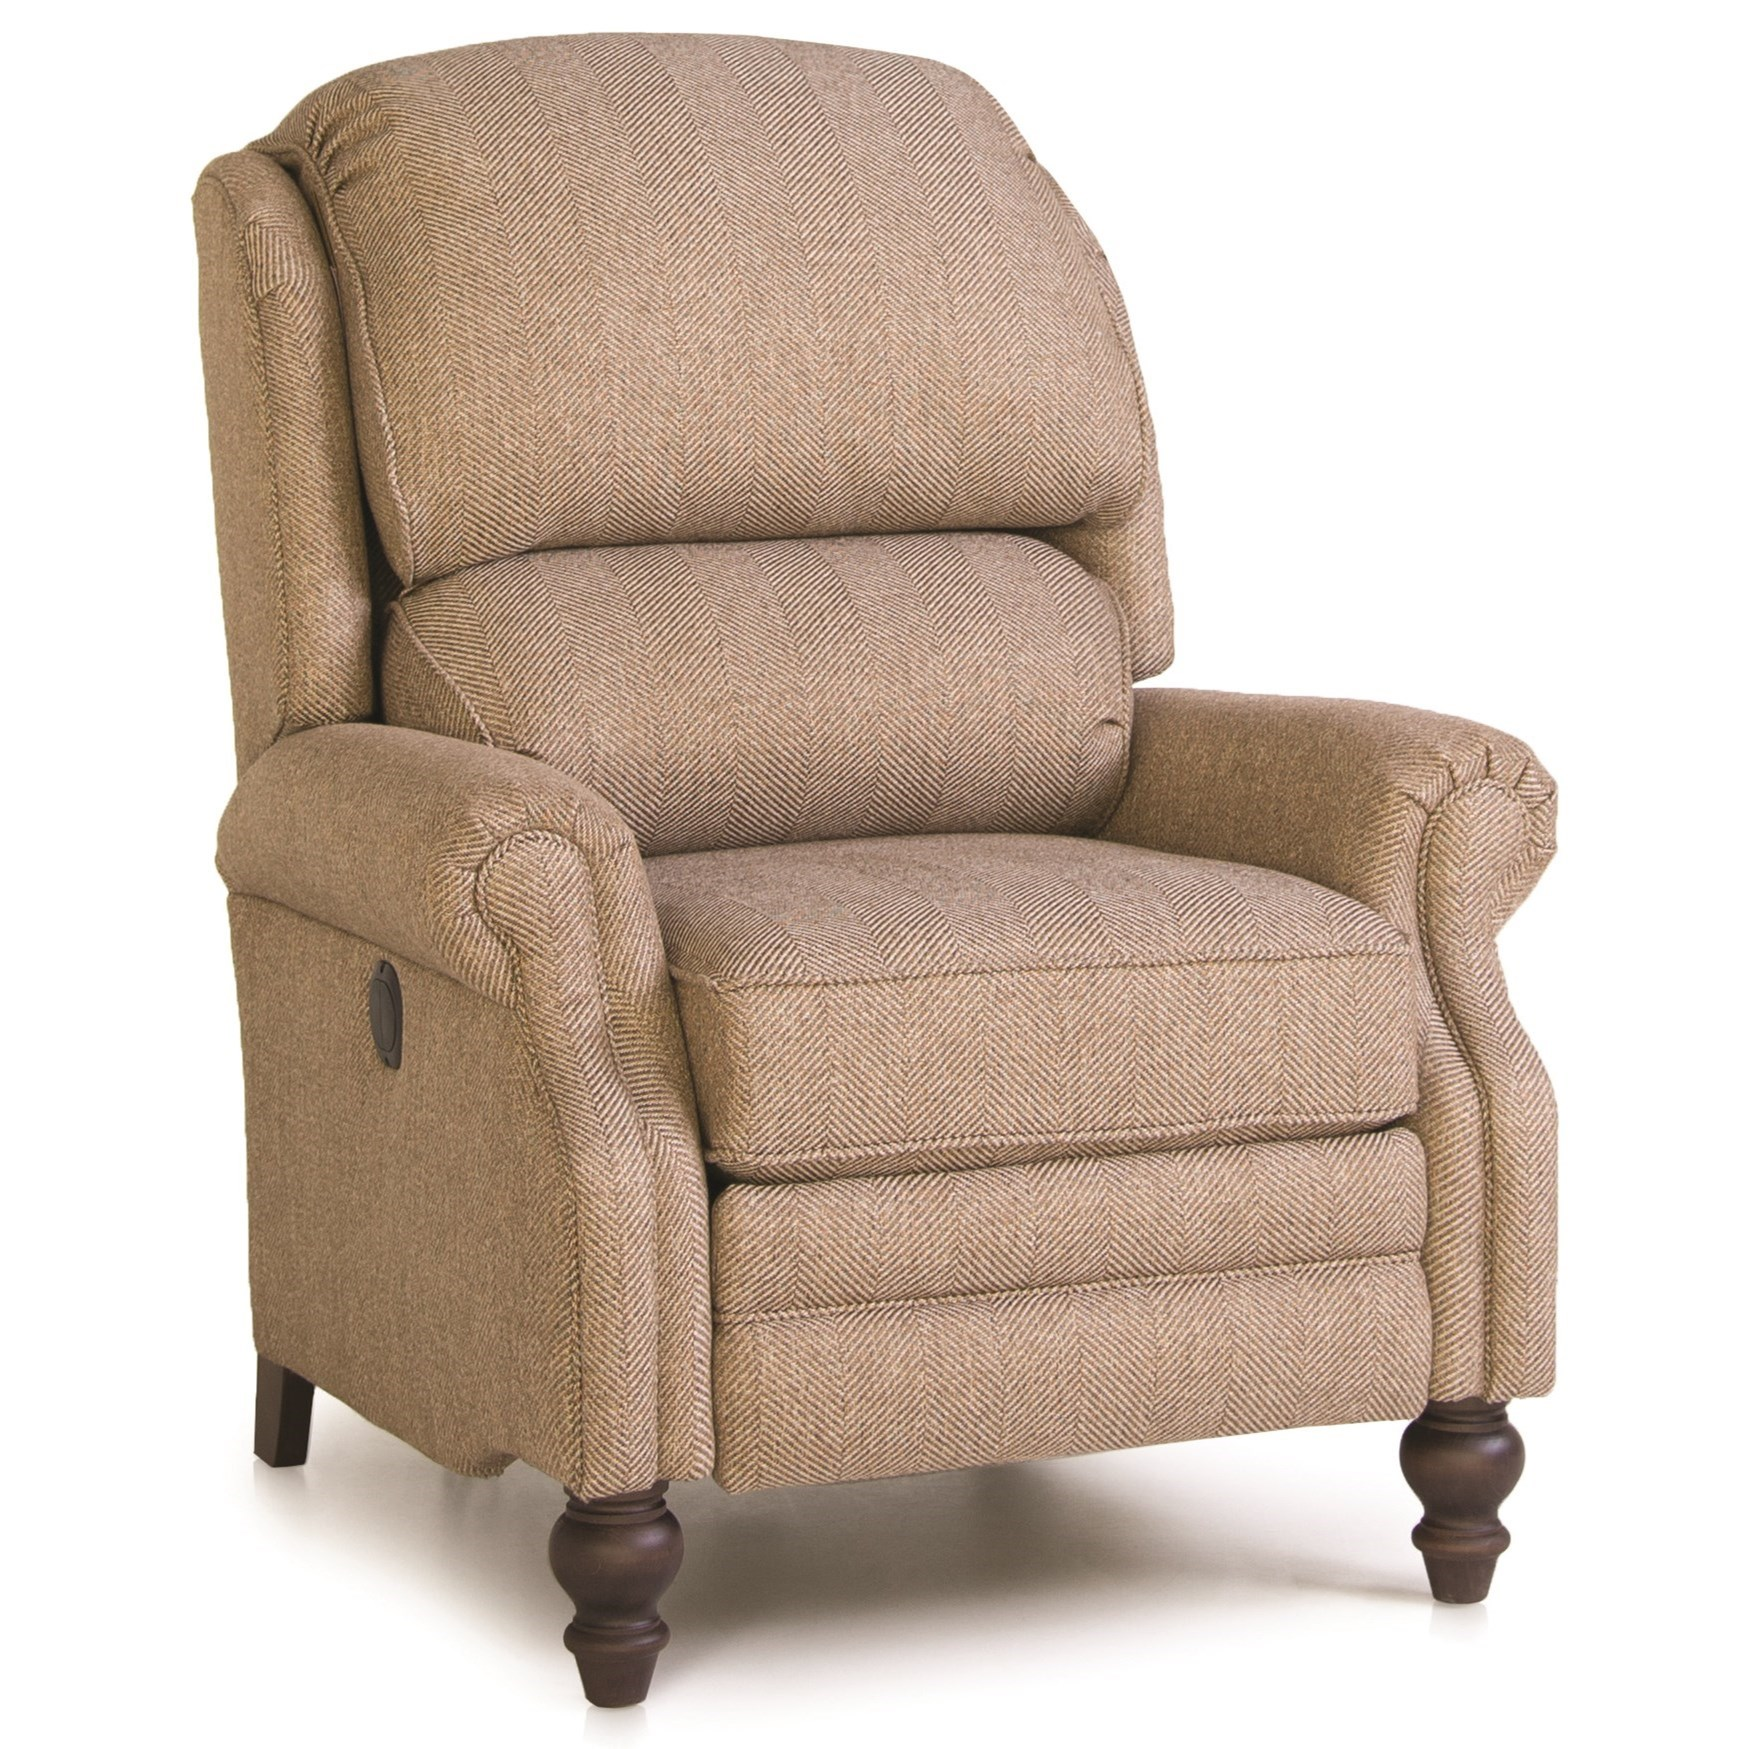 705 Motorized Reclining Chair by Smith Brothers at Turk Furniture